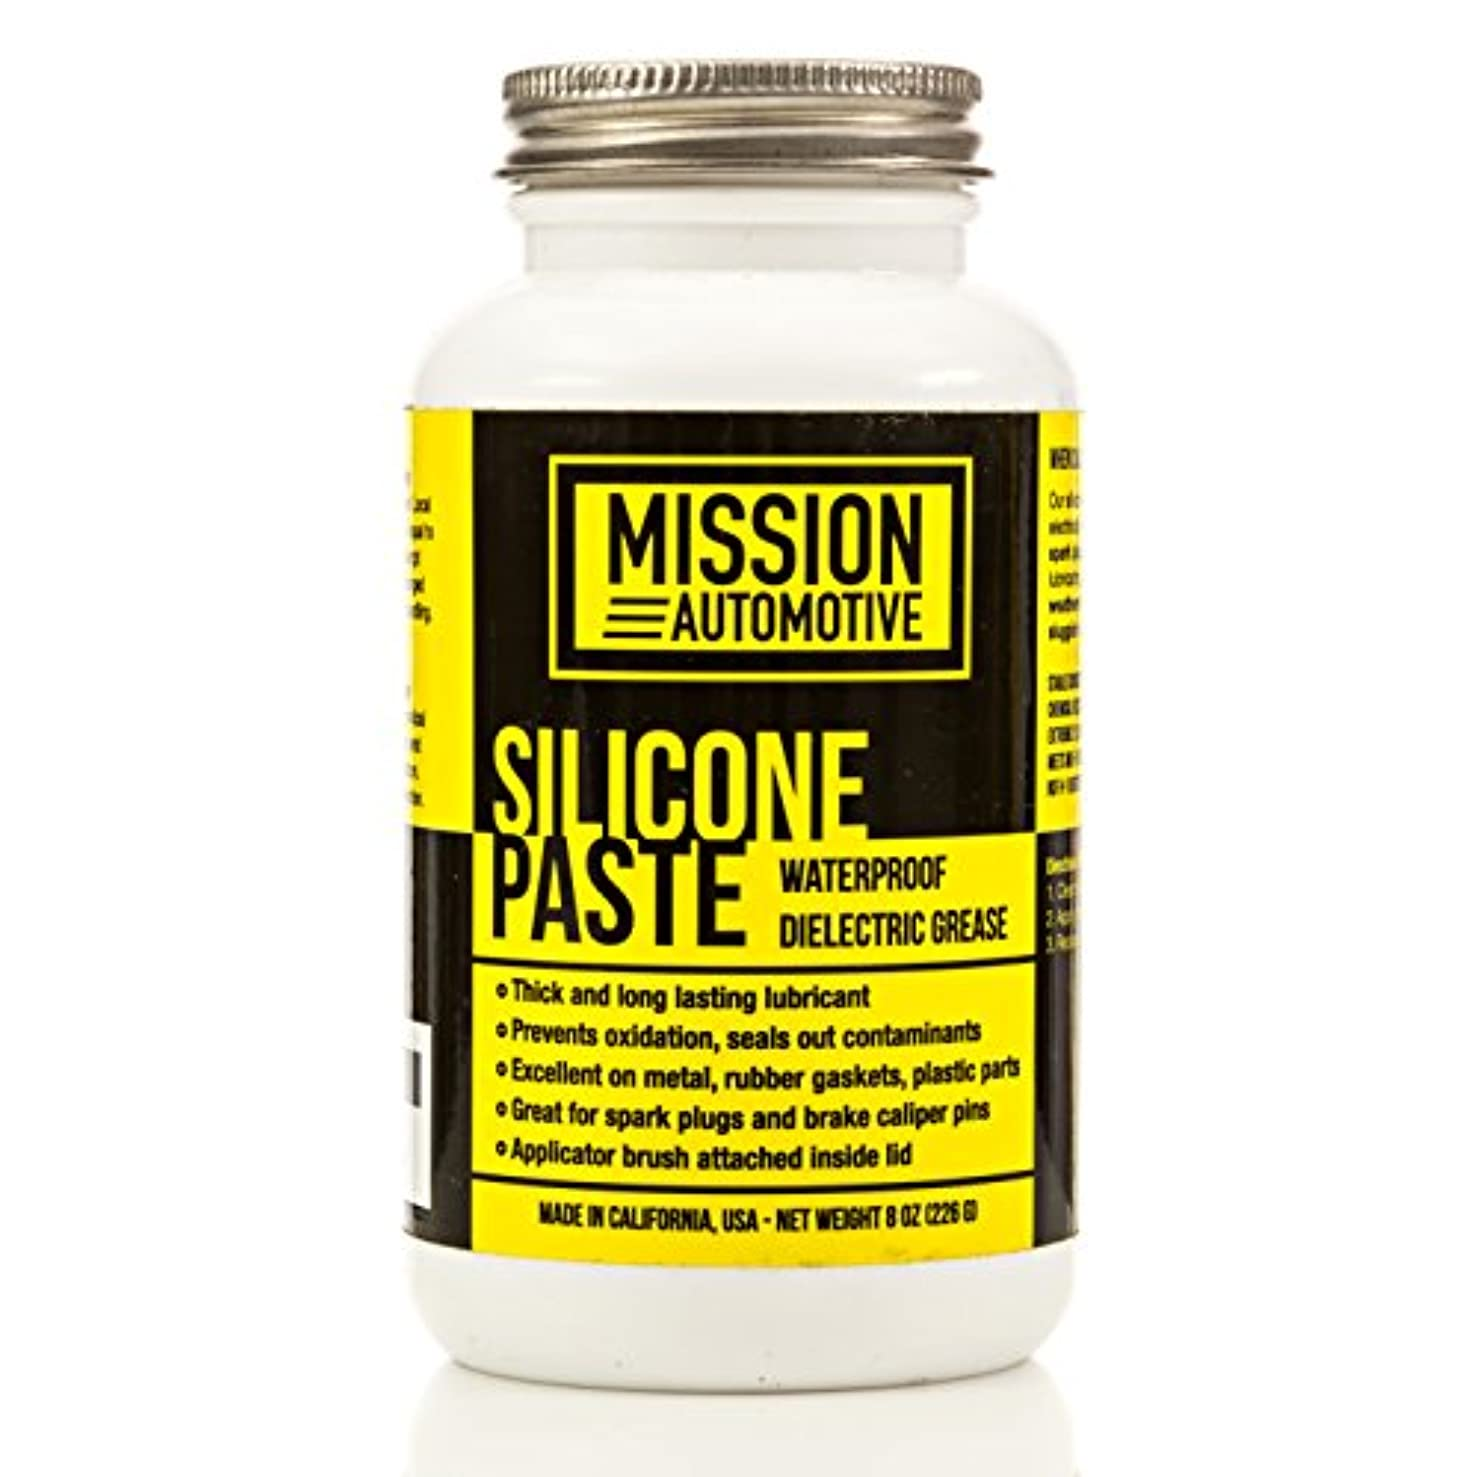 Mission Automotive Dielectric Grease/Silicone Paste/Waterproof Marine Grease (8 Oz.) - Excellent Silicone Grease